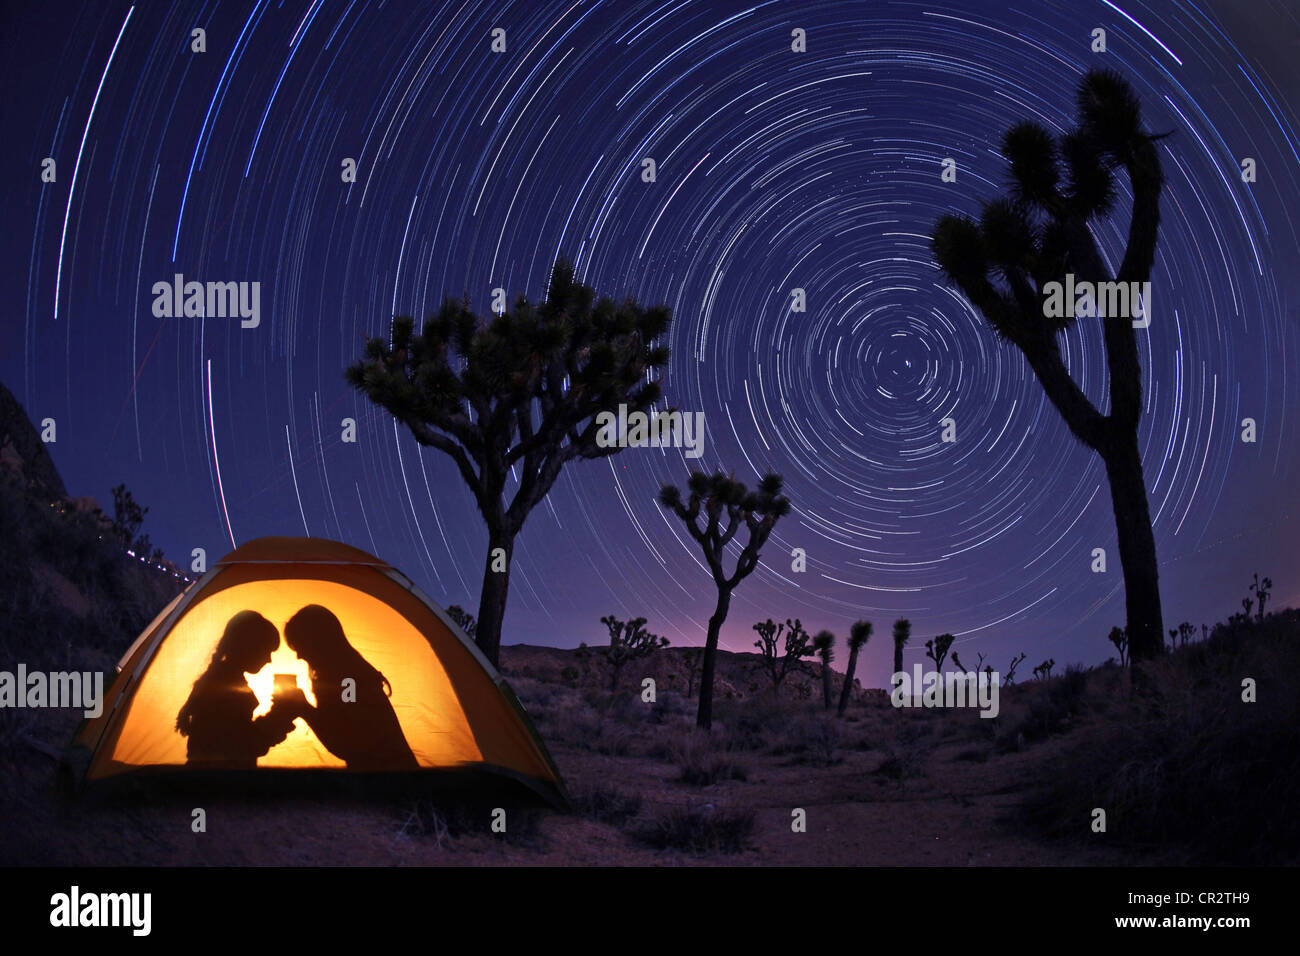 Children Camping at Night in a Tent With Star Trails - Stock Image